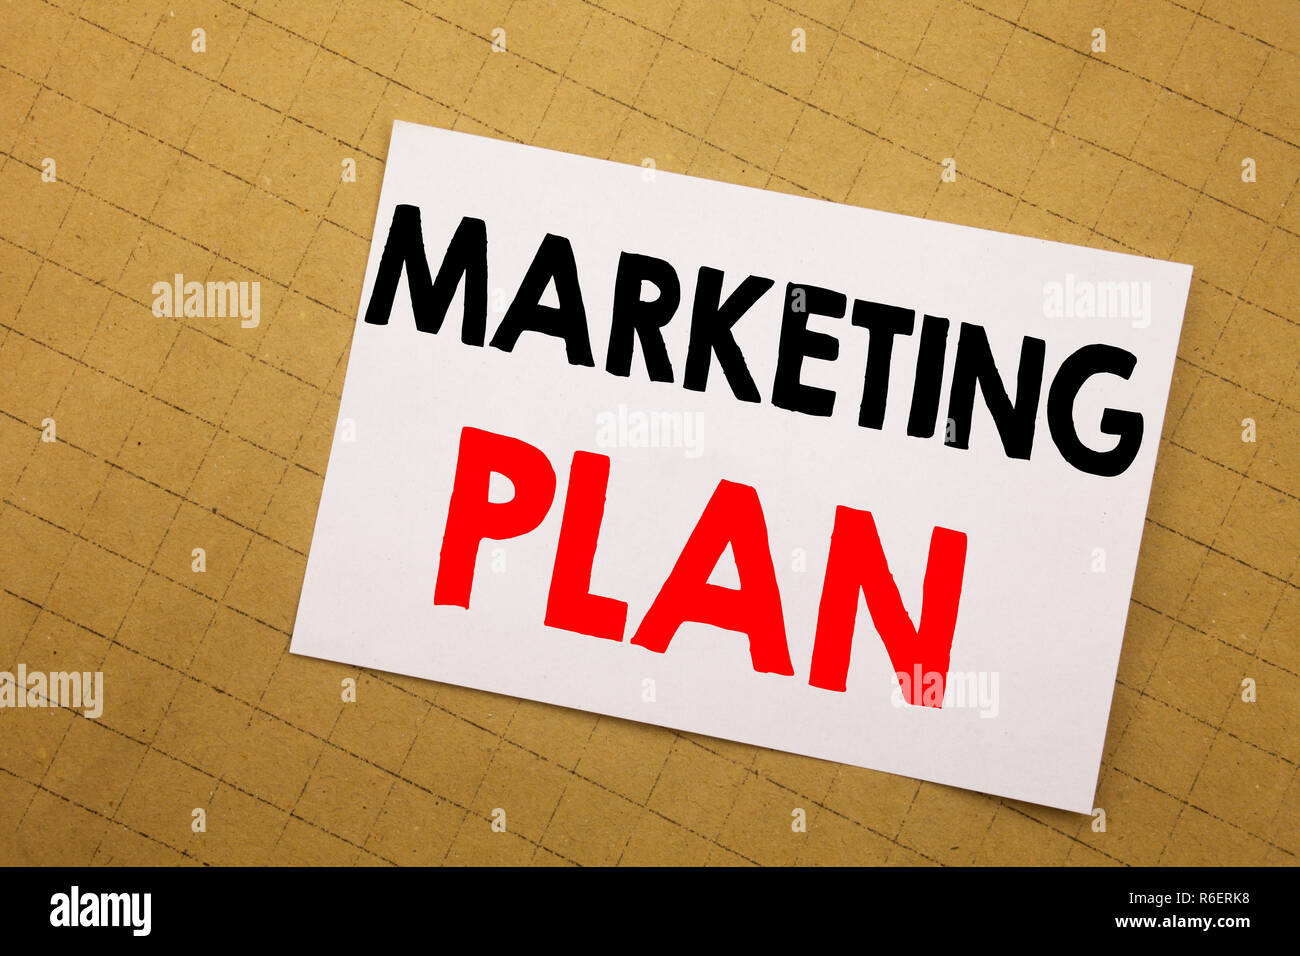 Conceptual hand writing text caption inspiration showing Marketing Plan. Business concept for Planning Successful Strategy Written on sticky note yellow background. - Stock Image